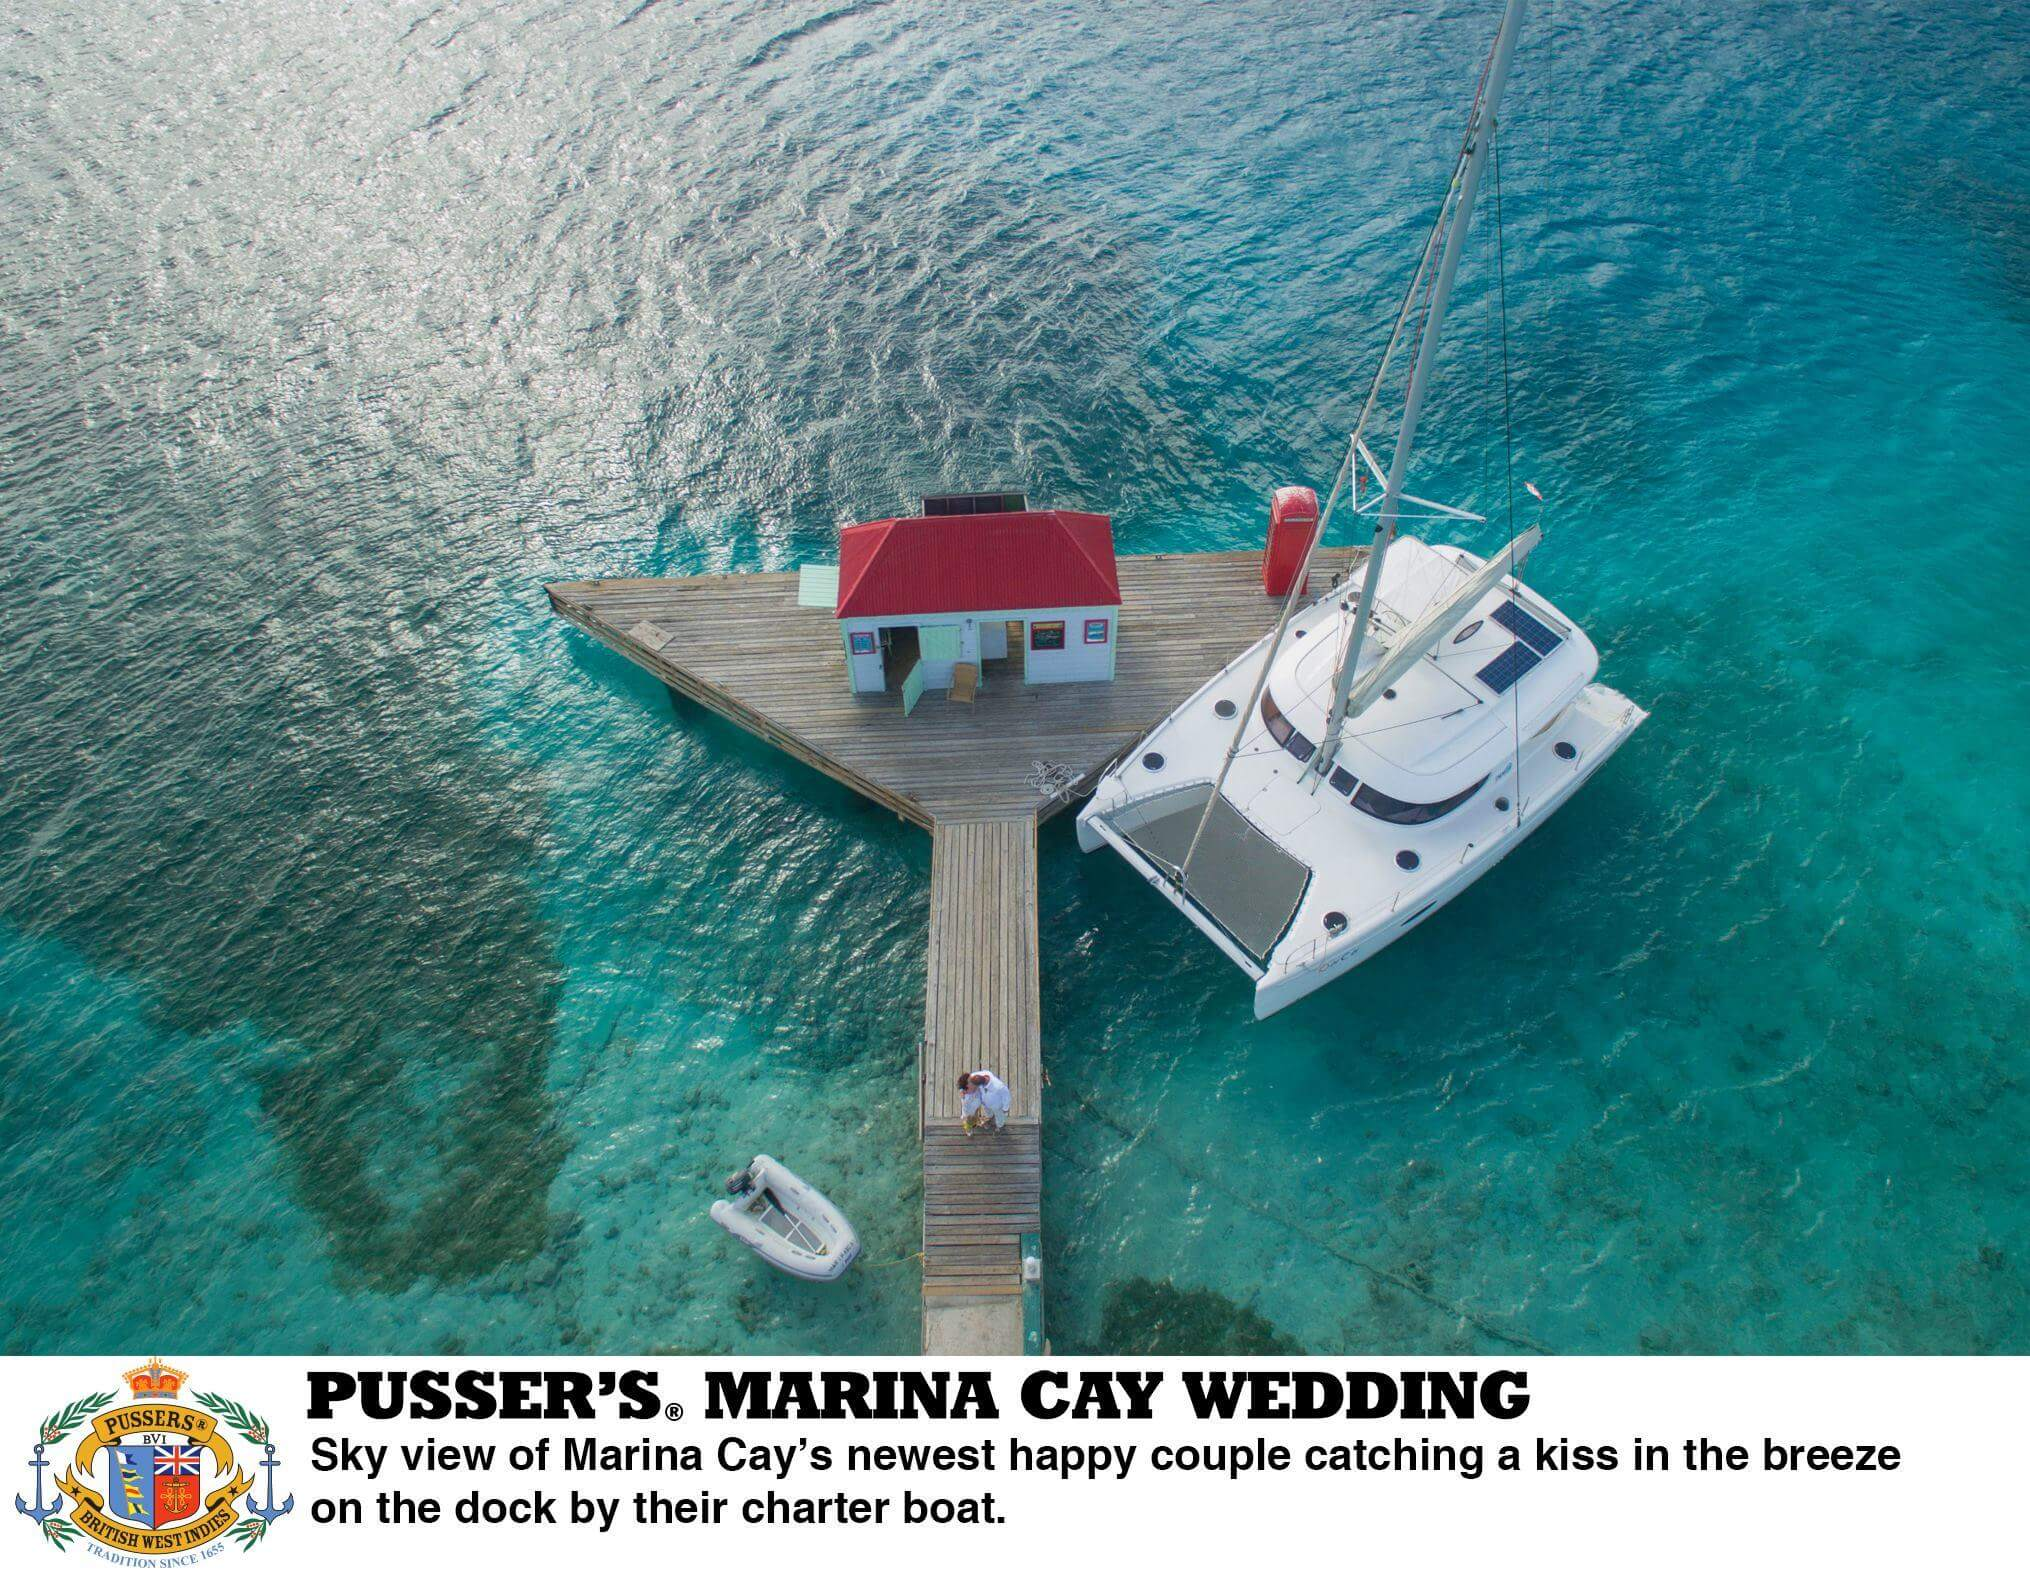 Pusser's Marina Cay – The Perfect setting for a Caribbean Wedding Celebration!